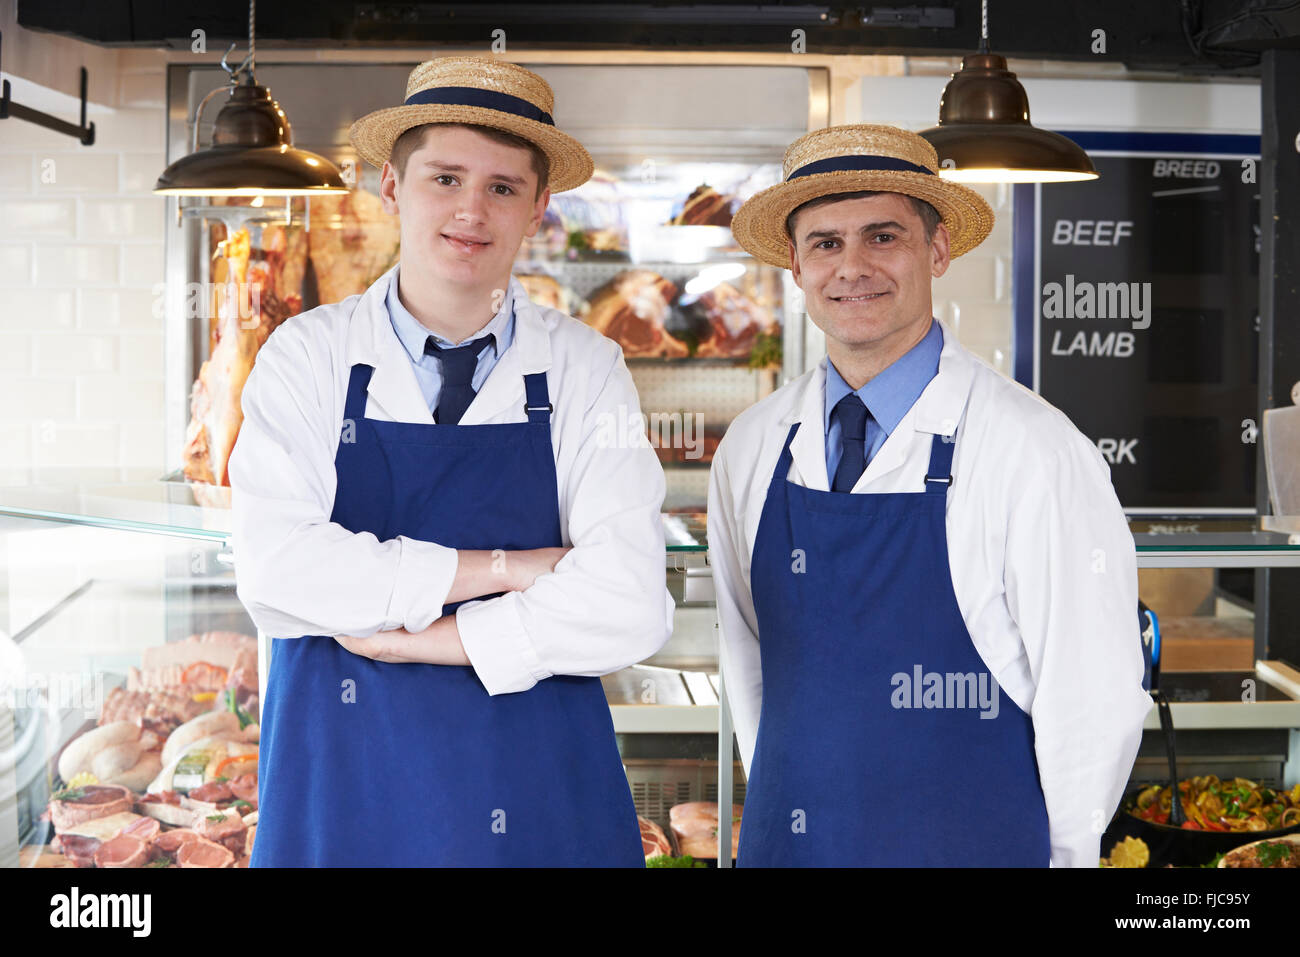 Portrait Of Butcher With Apprentice - Stock Image